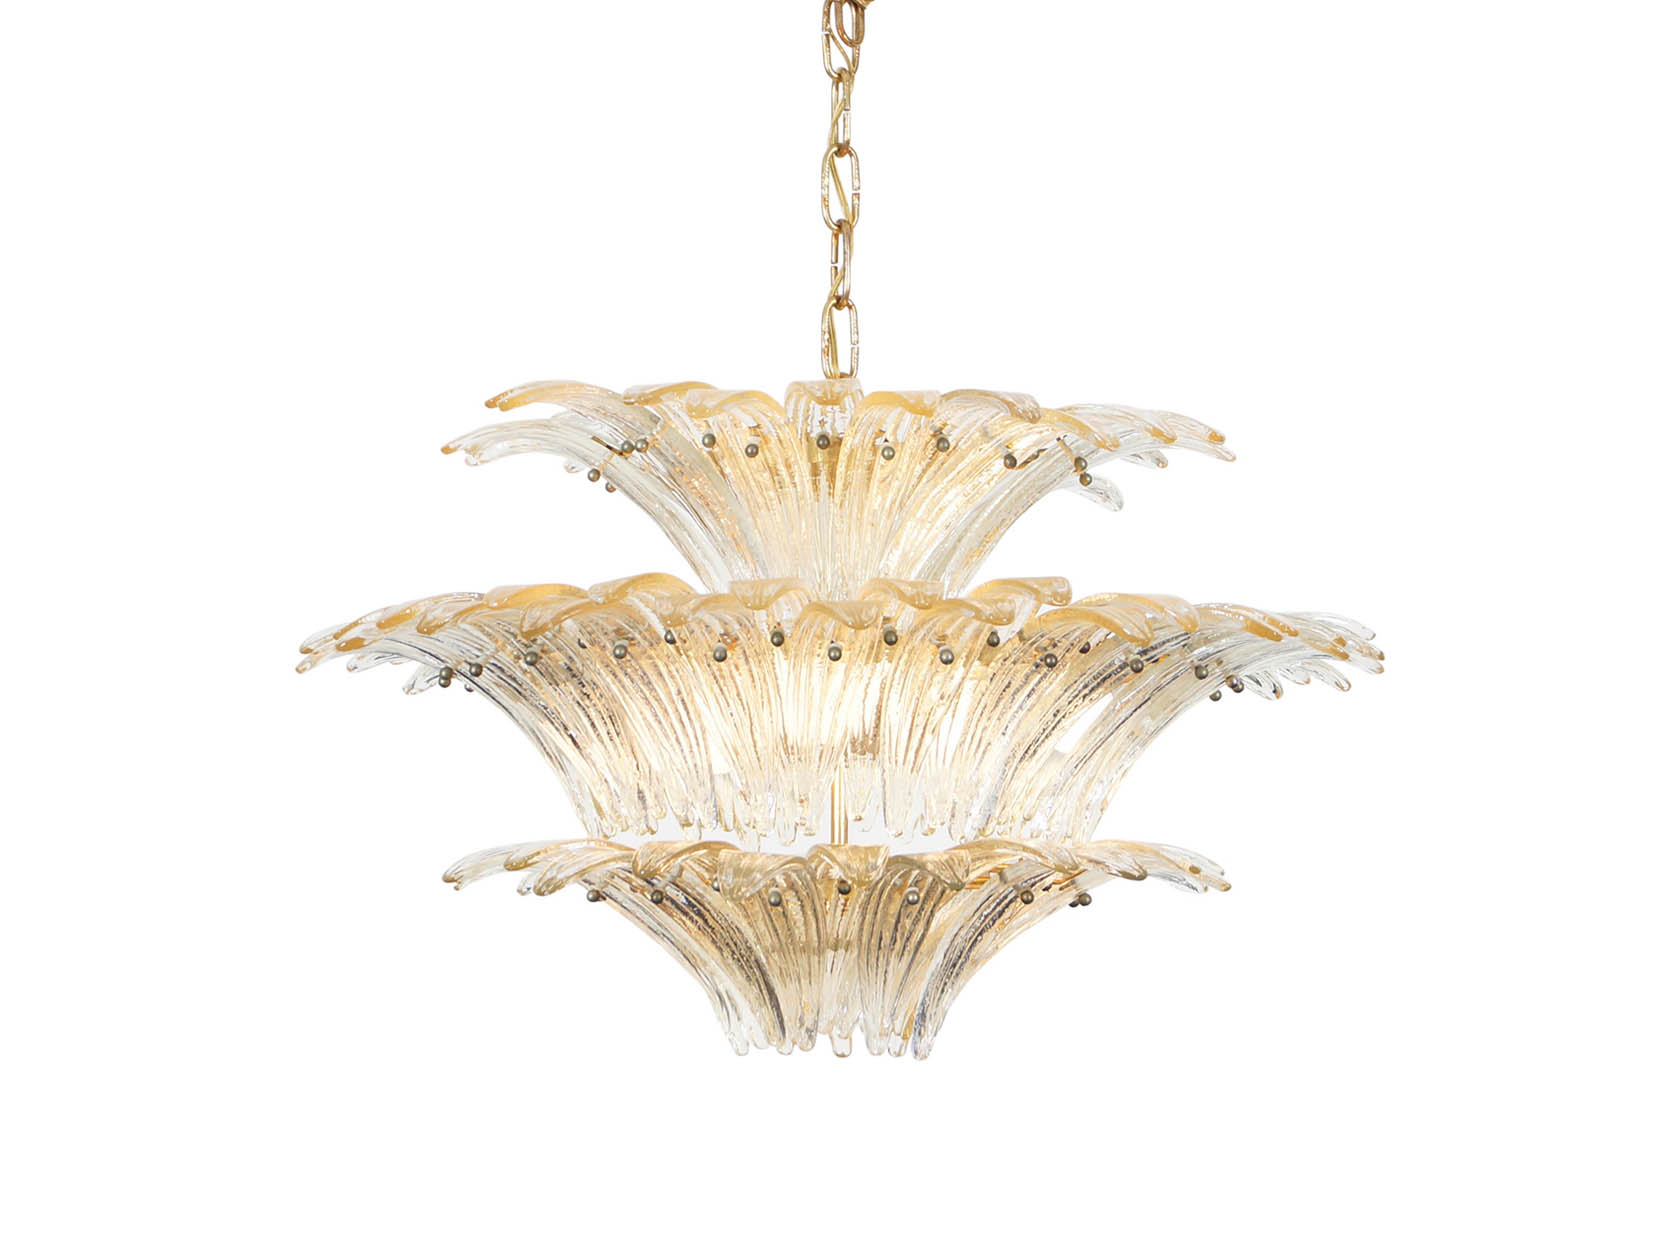 Spectacular Italian Murano Glass Palmette Chandelier by Barovier & Toso